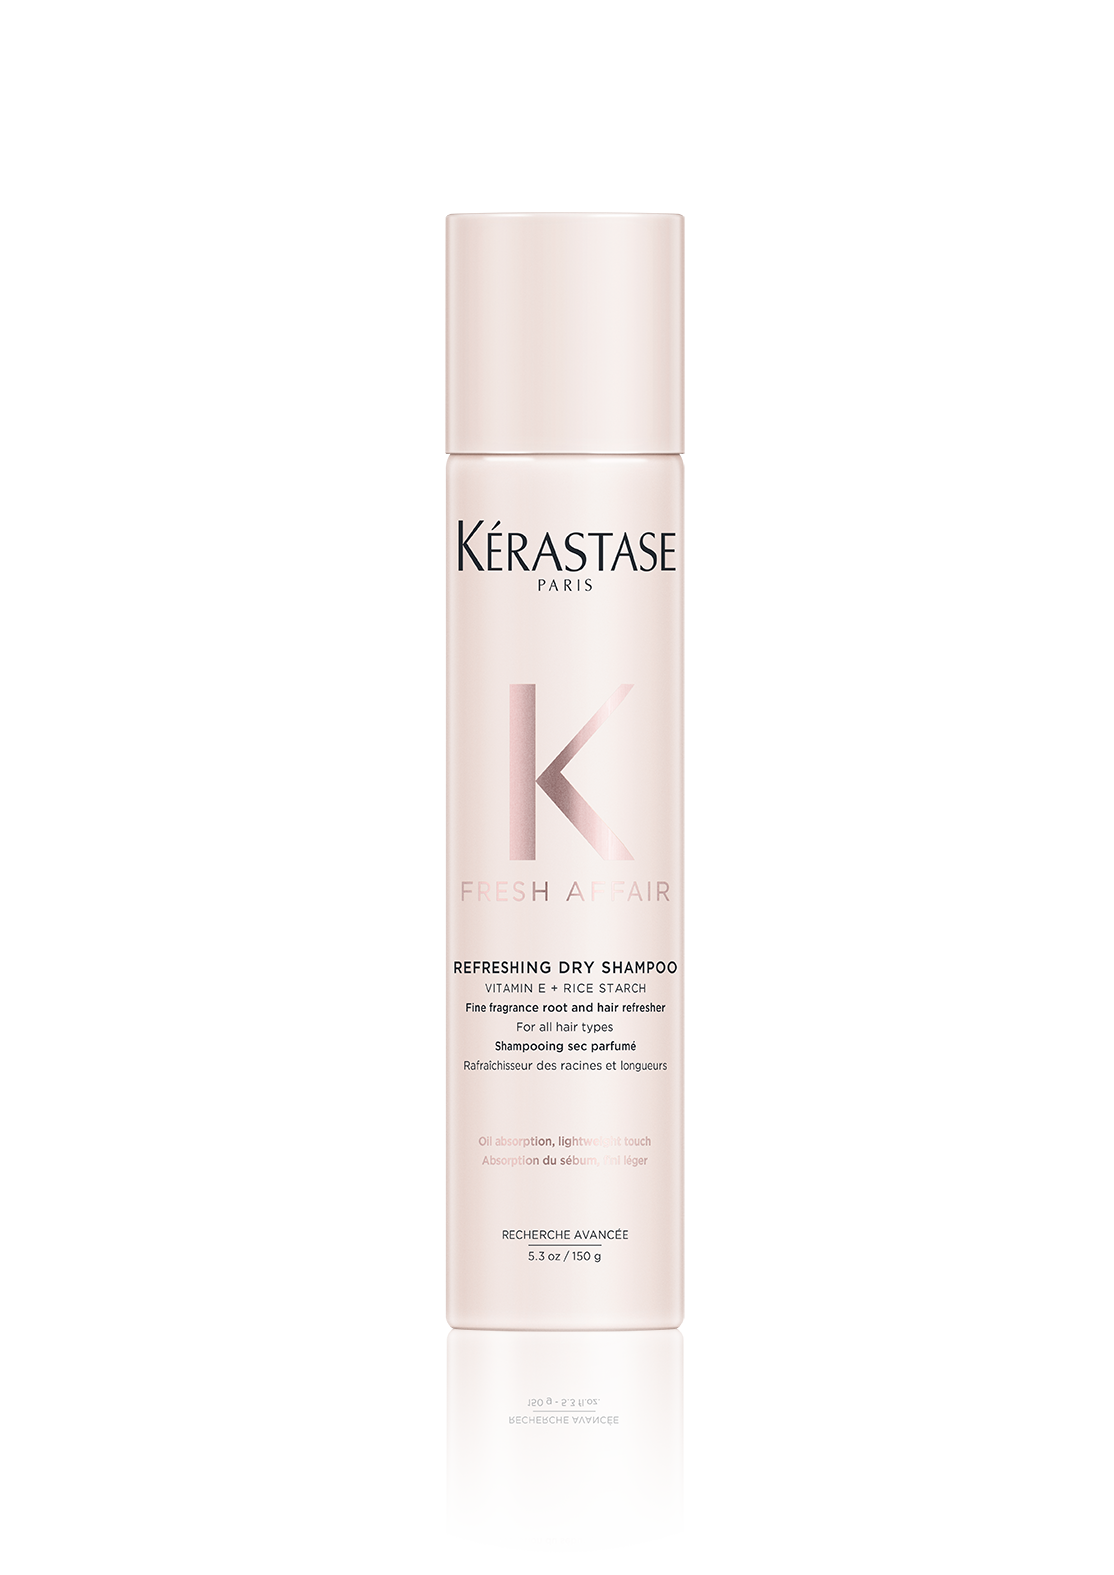 Neu! Kèrastase Fresh Affair